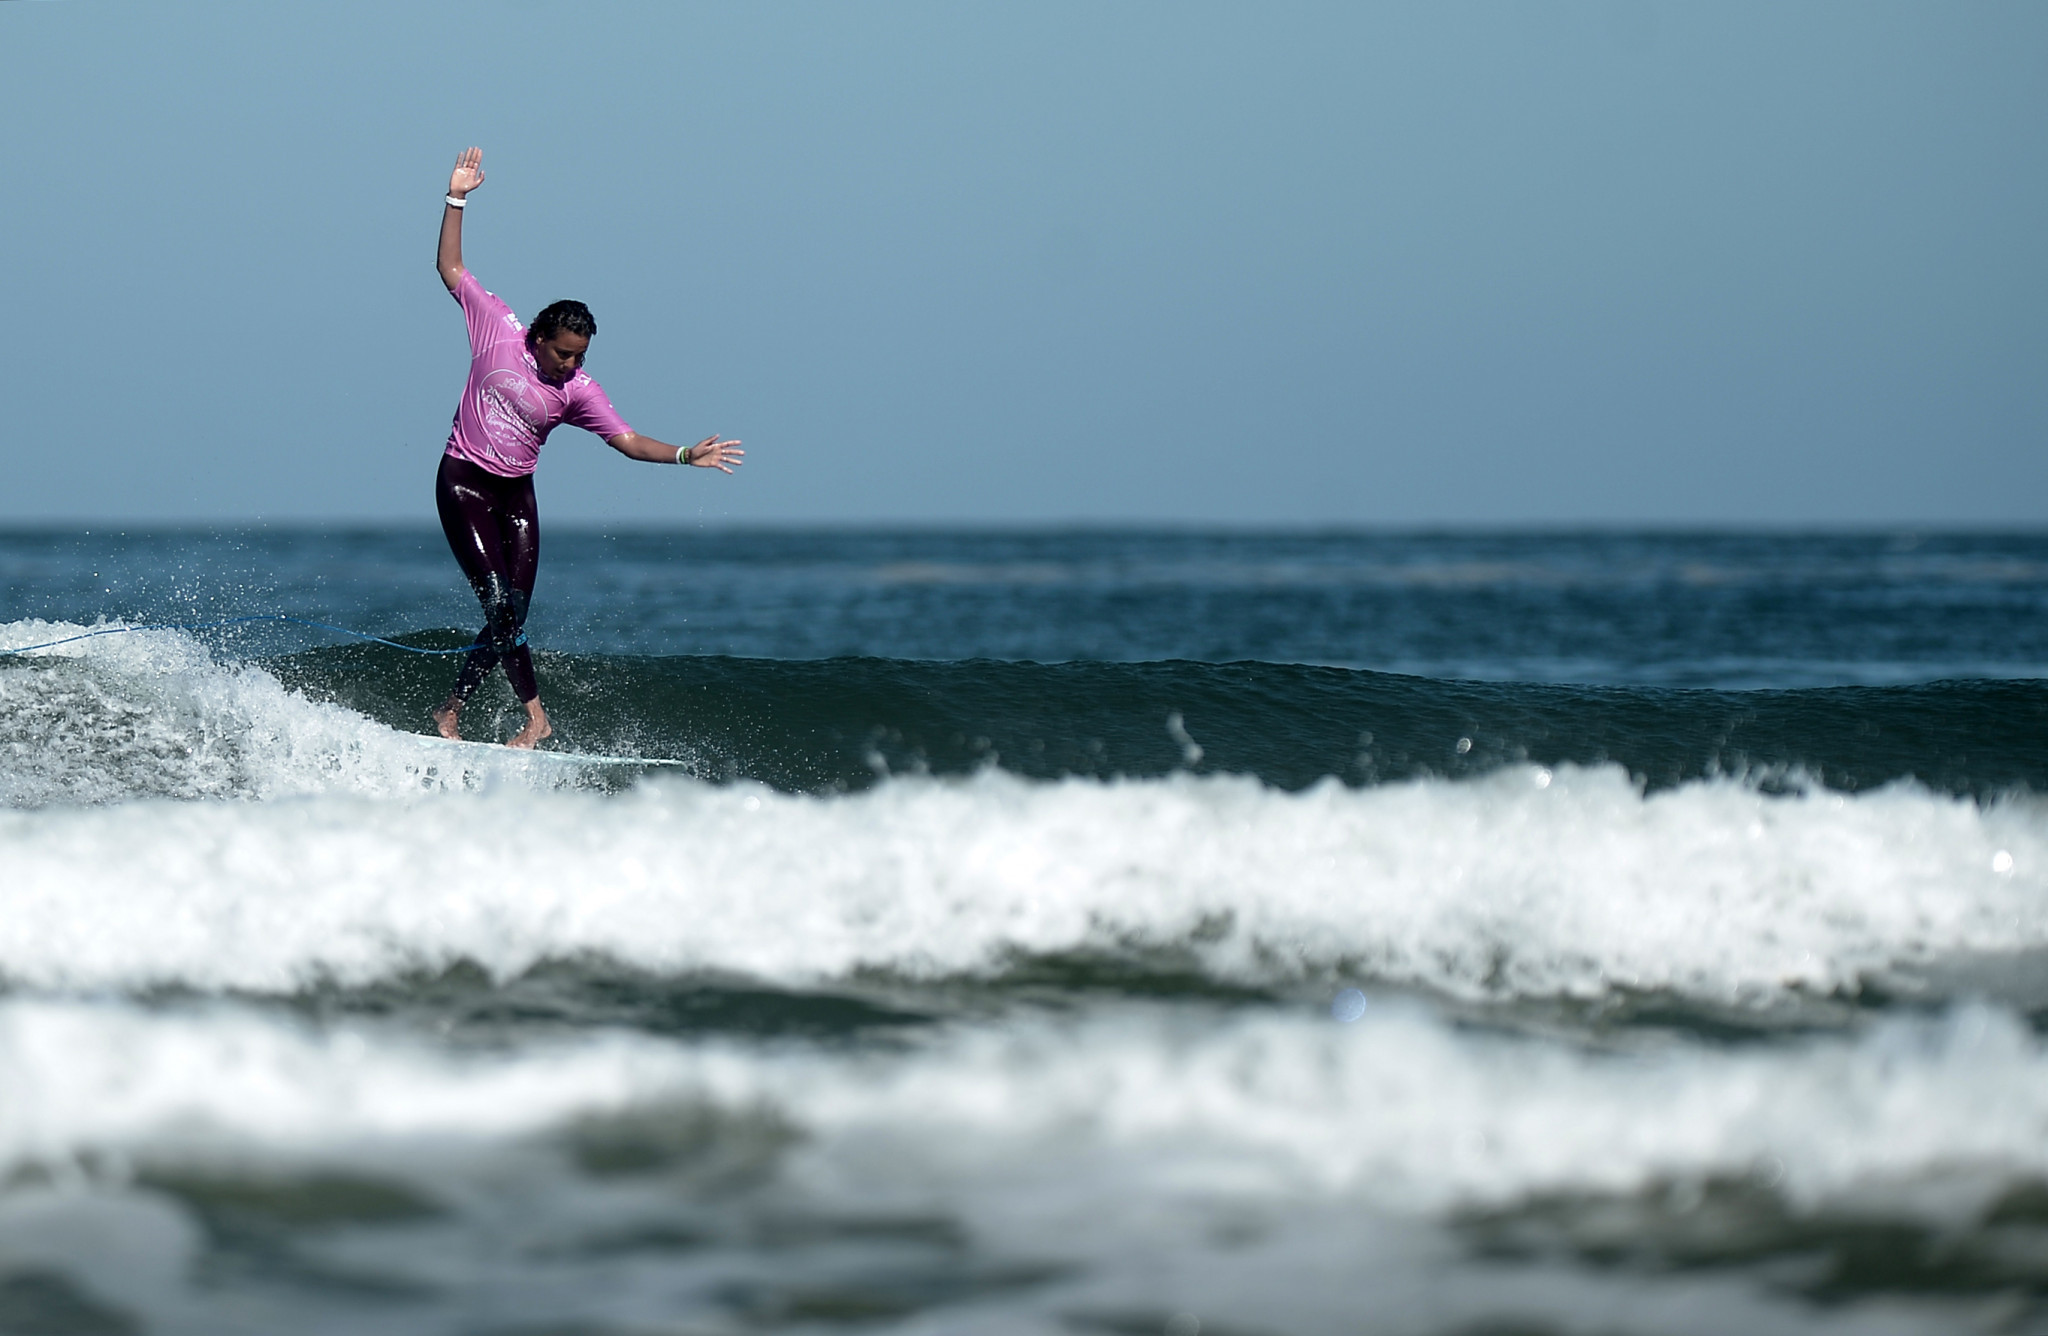 The ISA World Surfing Games in El Salvador were due to have taken place this month, but were postponed indefinitely due to the pandemic ©Getty Images